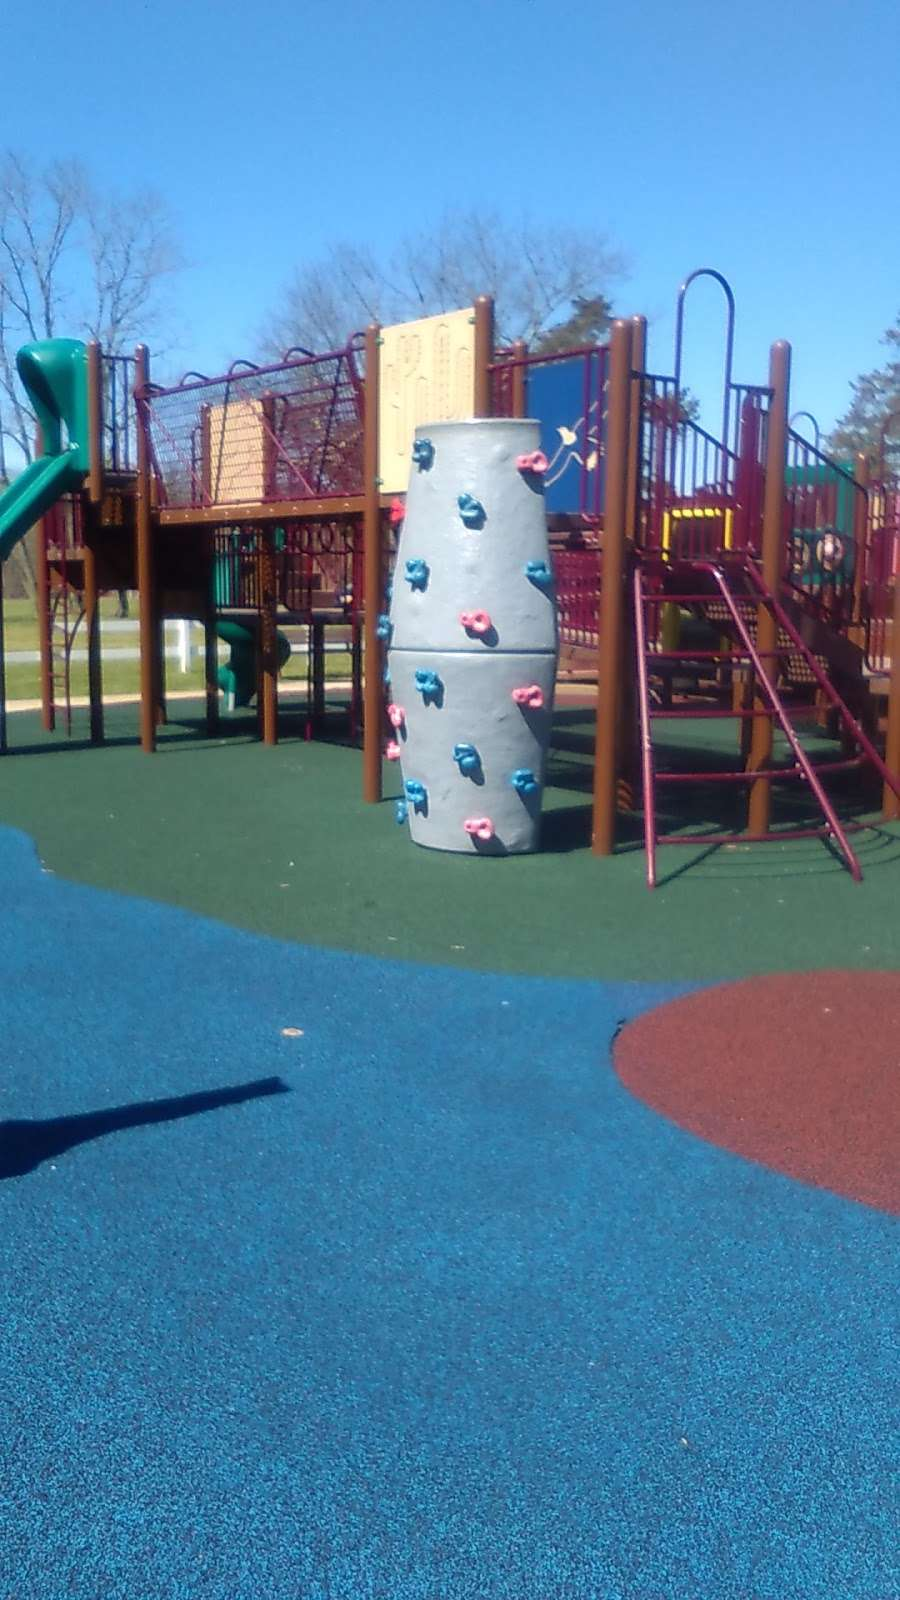 Riverwood Park Recreation - park  | Photo 9 of 10 | Address: Riverwood Dr, Toms River, NJ 08753, USA | Phone: (732) 341-1000